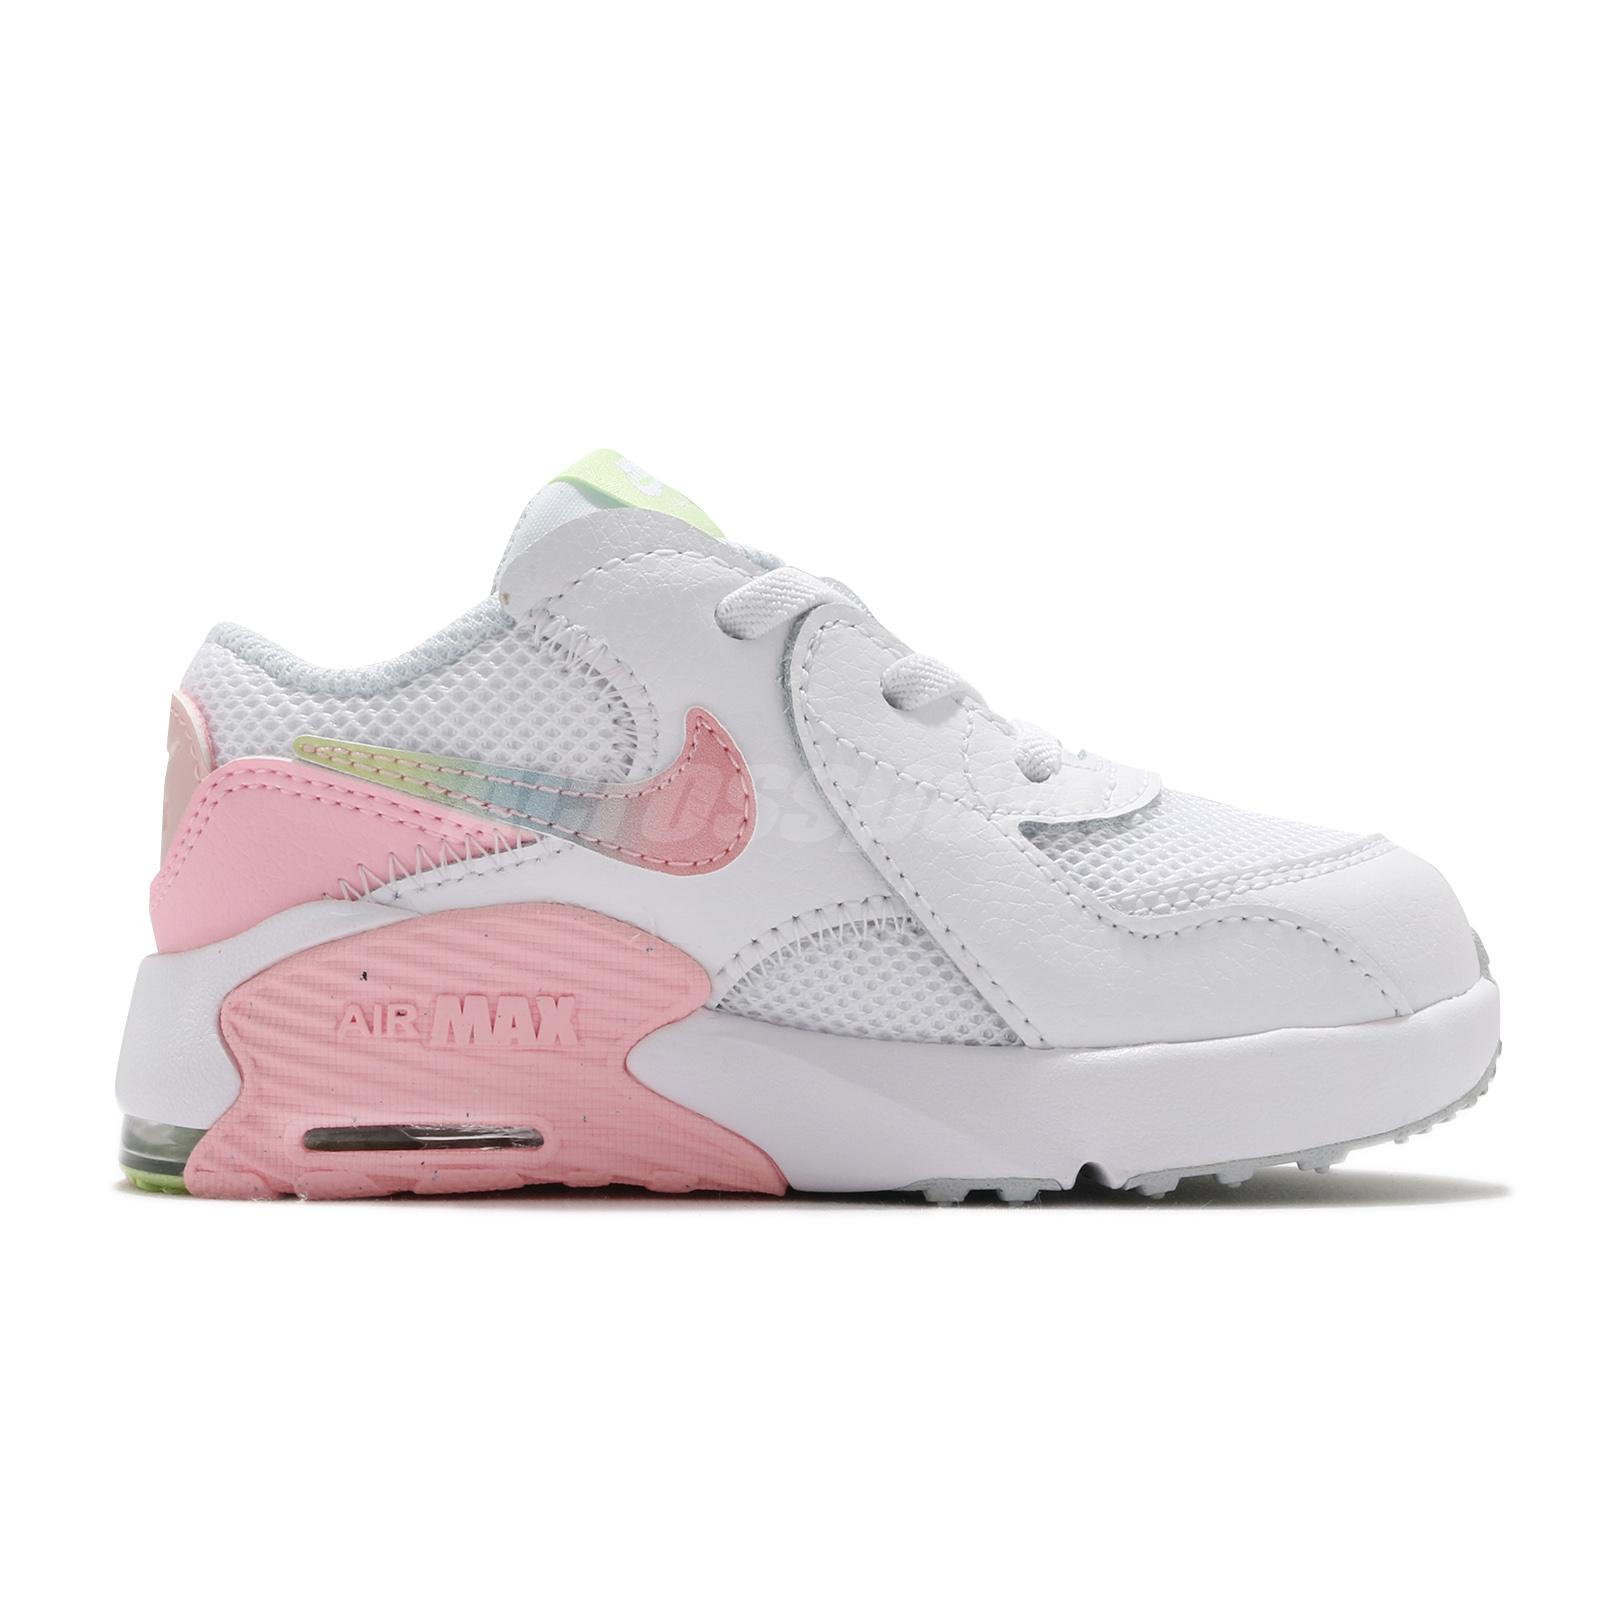 Details about Nike Air Max Excee MWH TD White Pink Lime Green Toddler Infant Casual CW5830-100